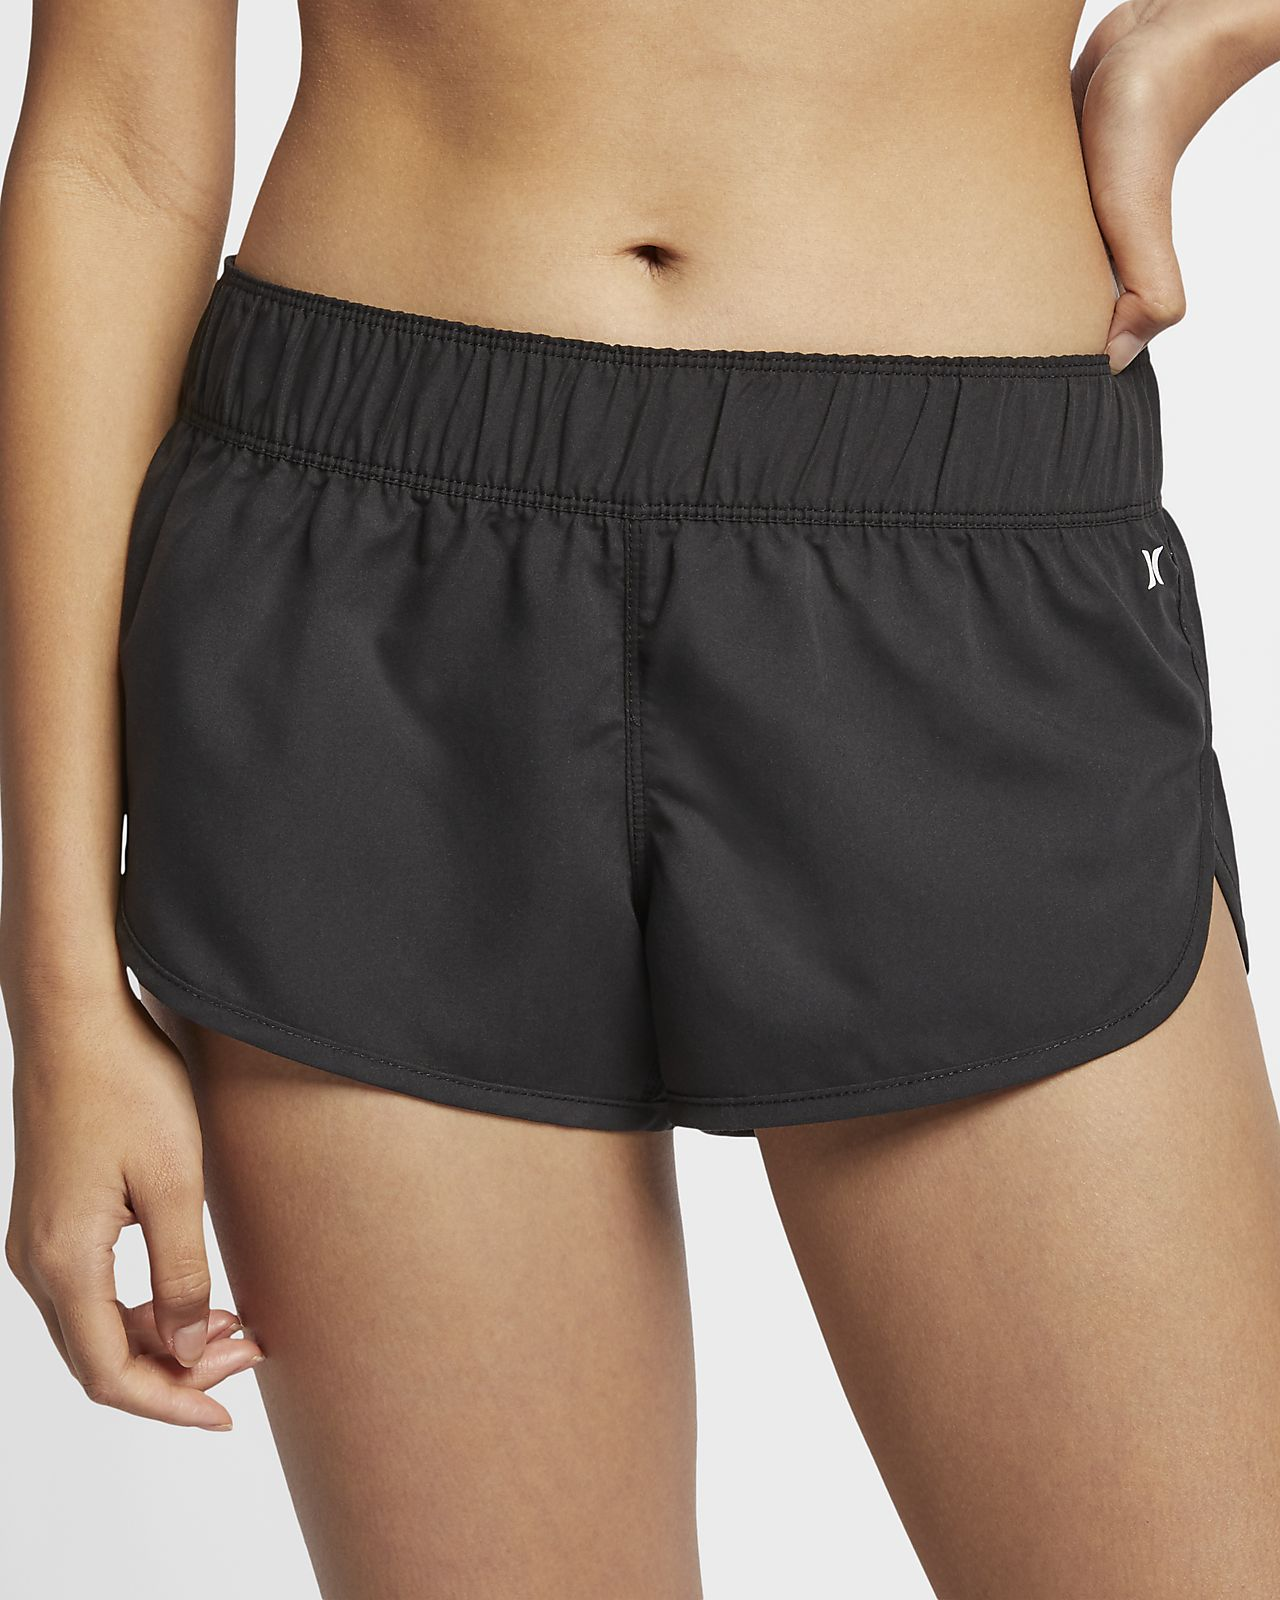 Hurley Supersuede Beachrider Women's Boardshorts